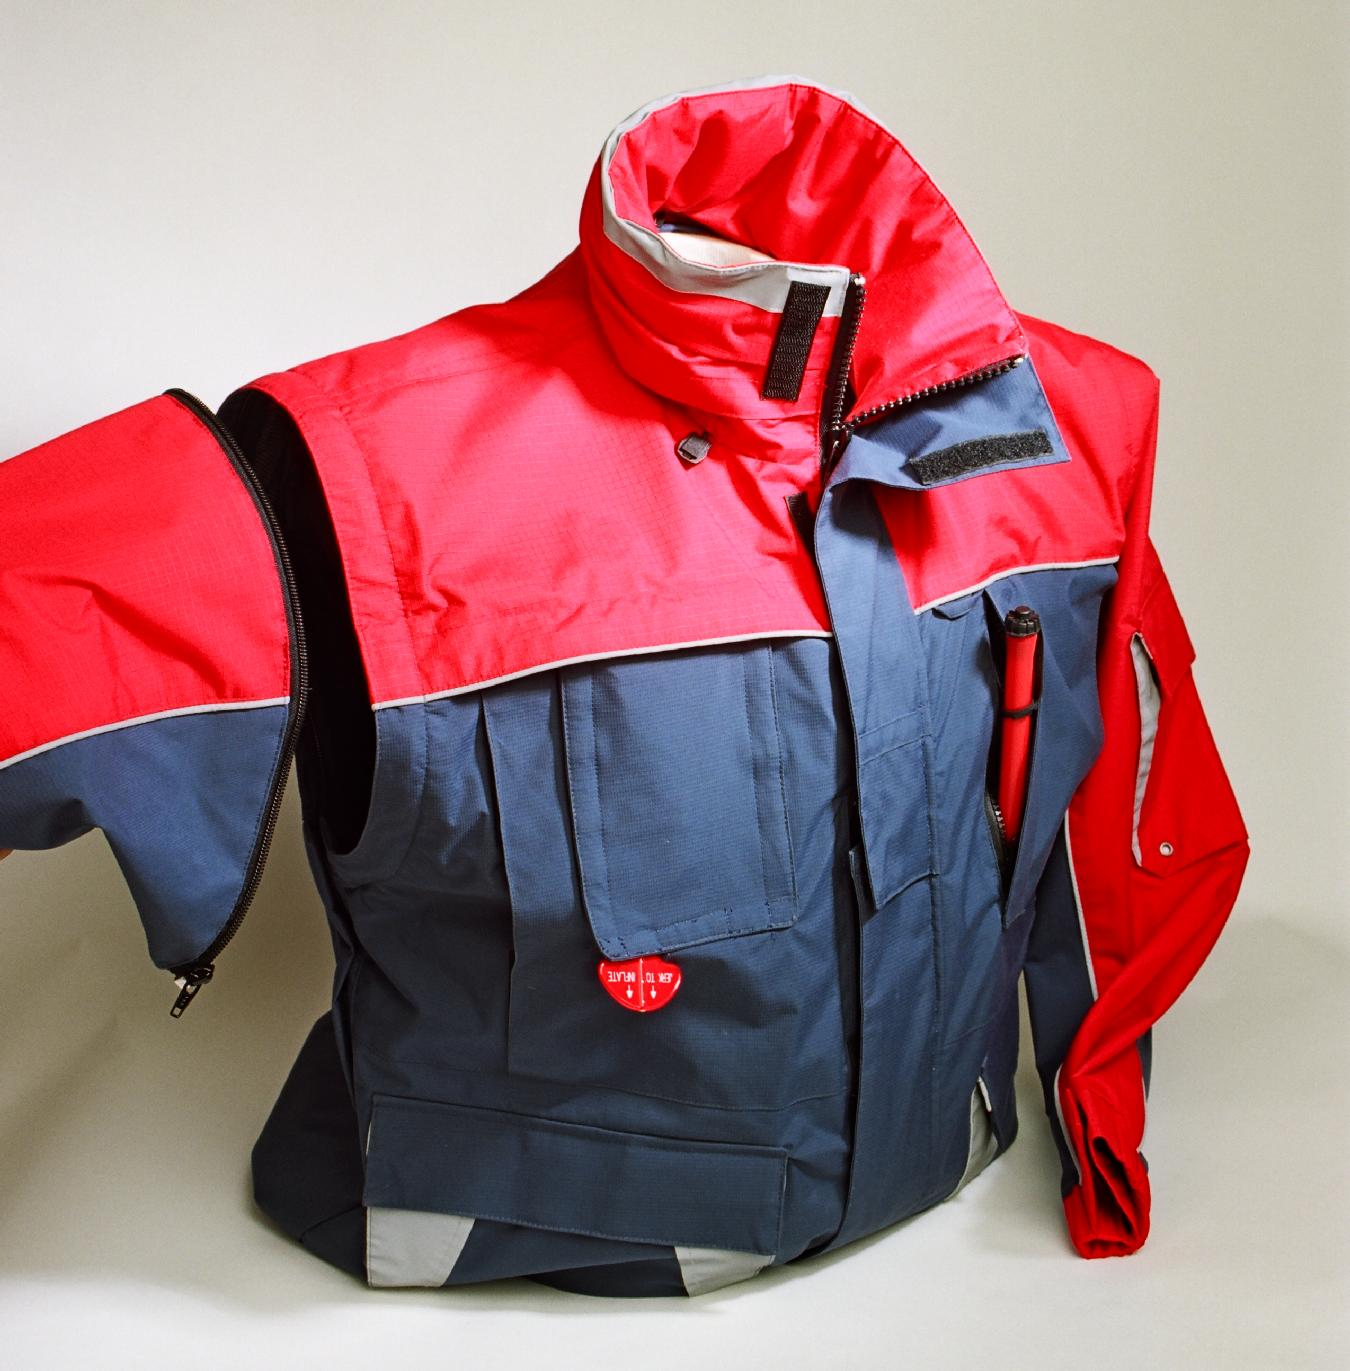 Orca Gear Inflatable Jacket